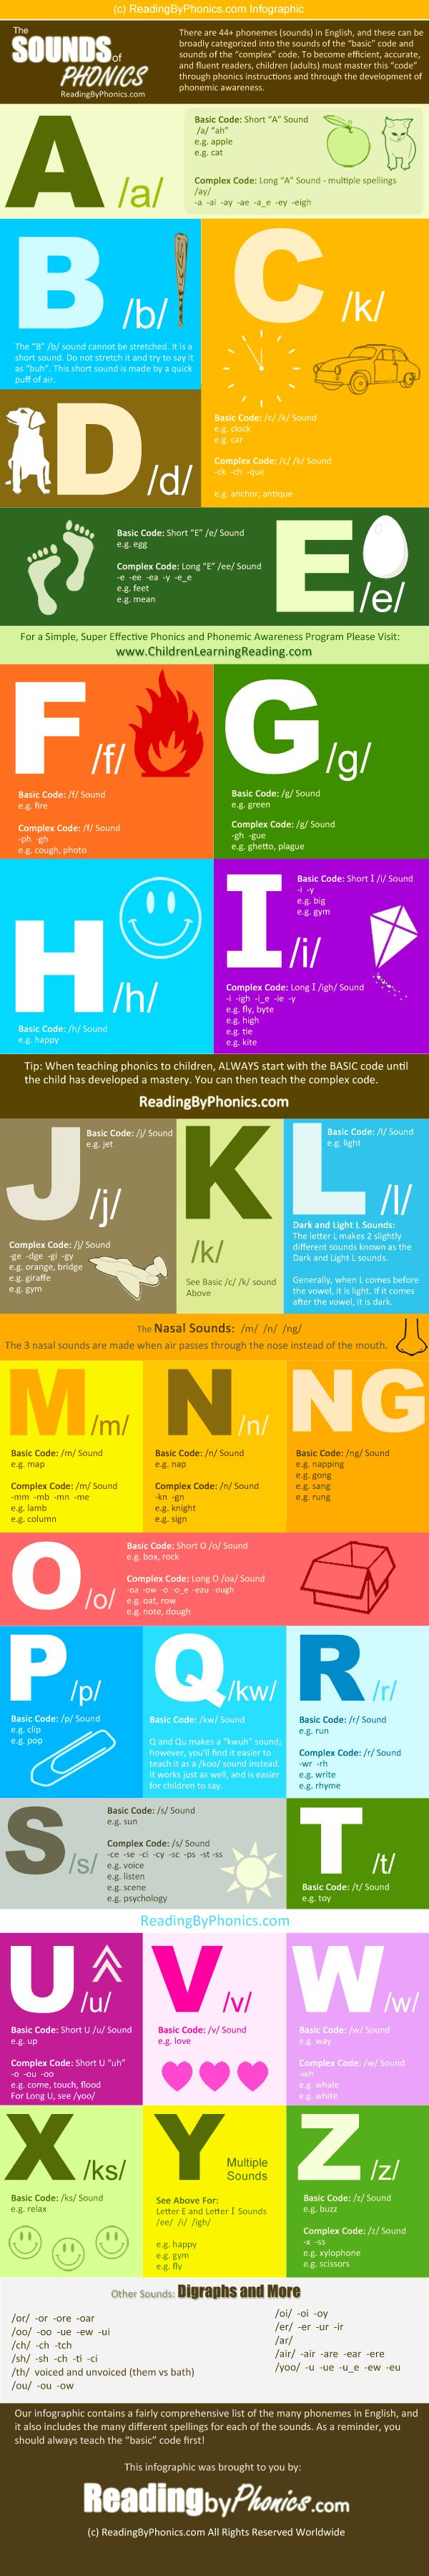 A Complete Phonics Sound Chart Infographic For Learning Reading